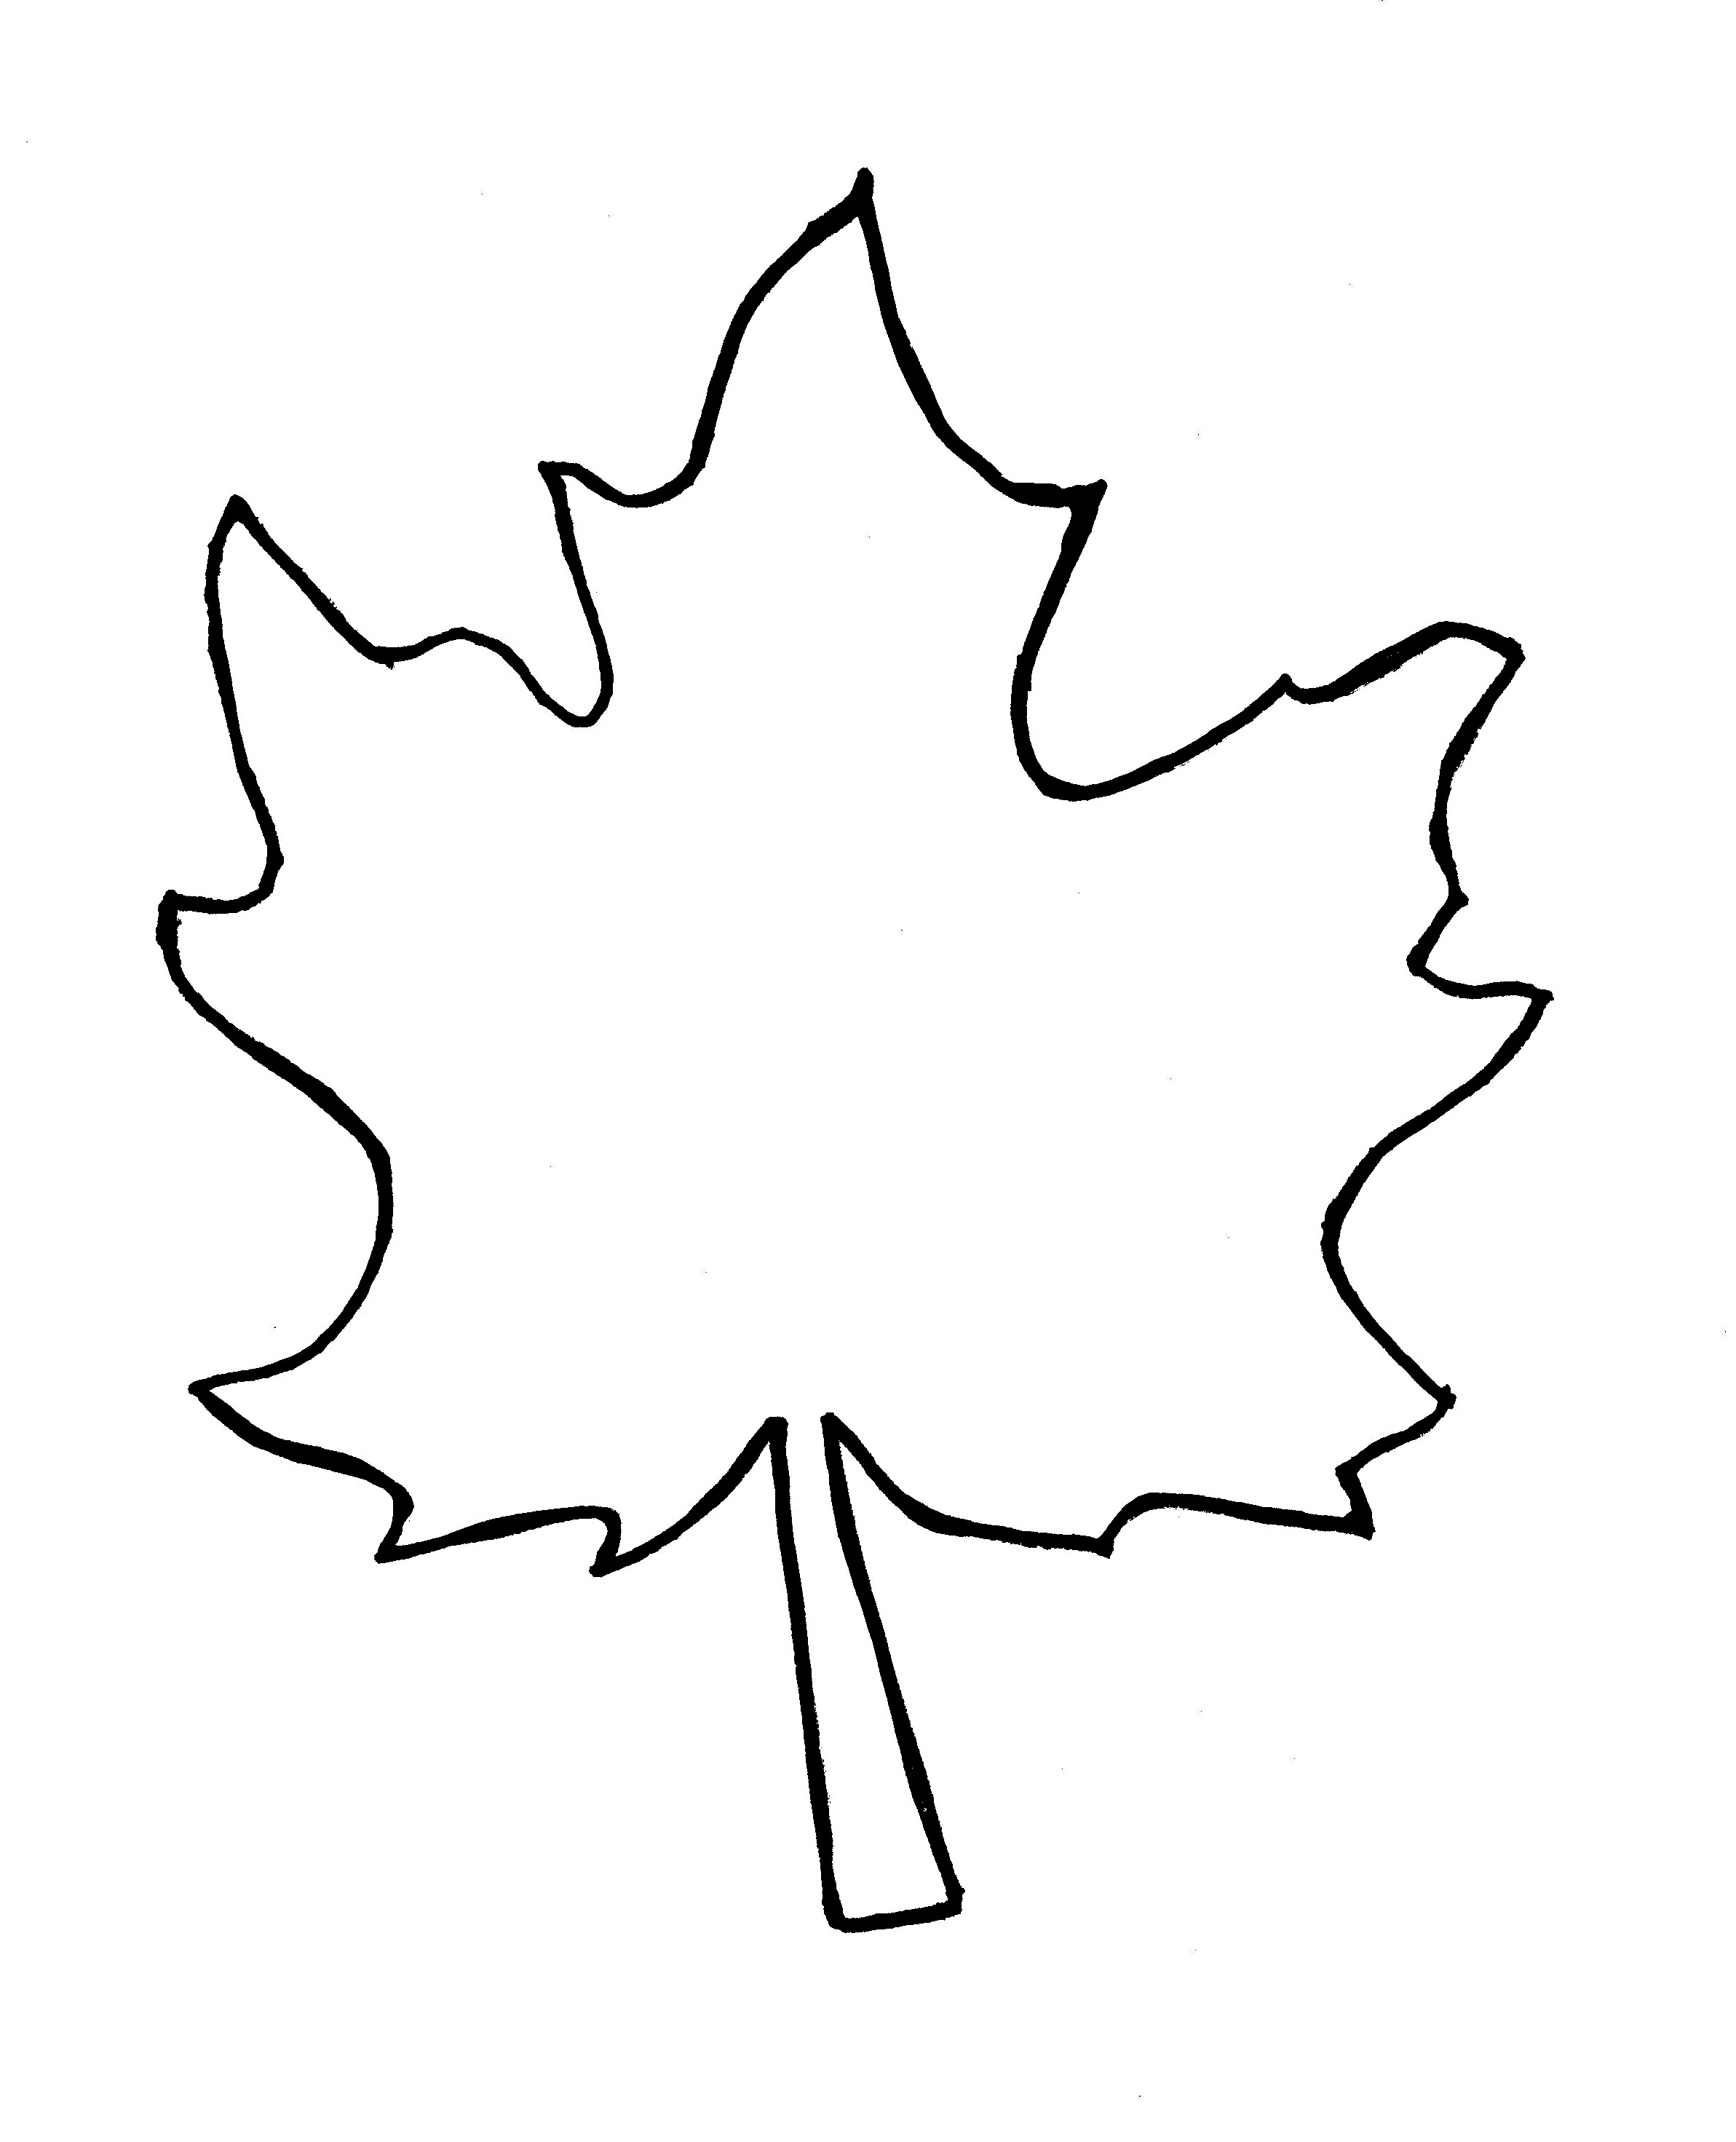 Free Jungle Leaf Template, Download Free Clip Art, Free